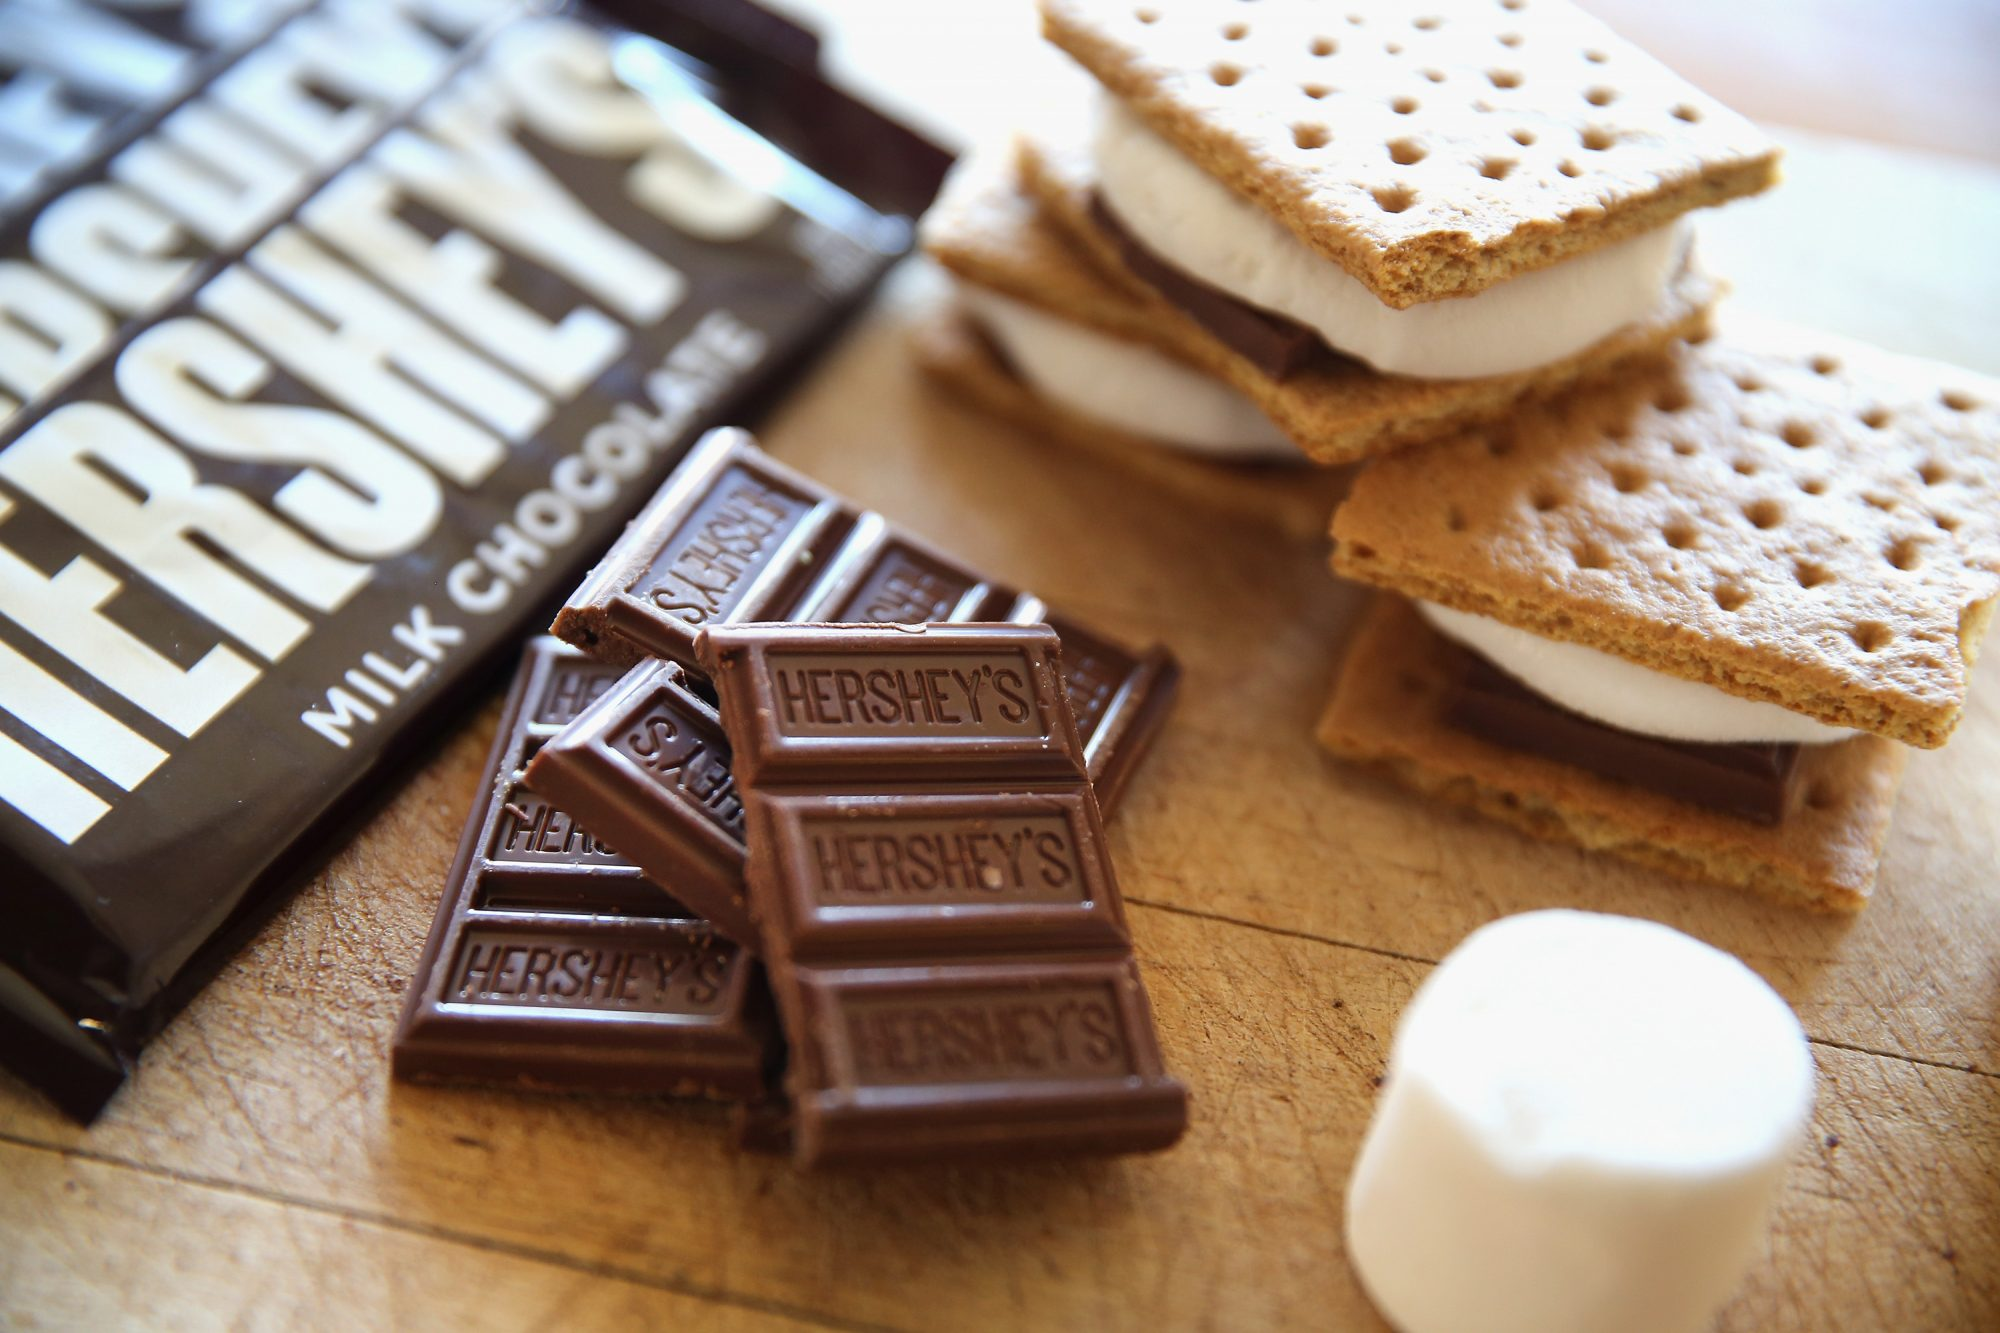 A Vermont Town Is Trying to Make the World's Largest S'more